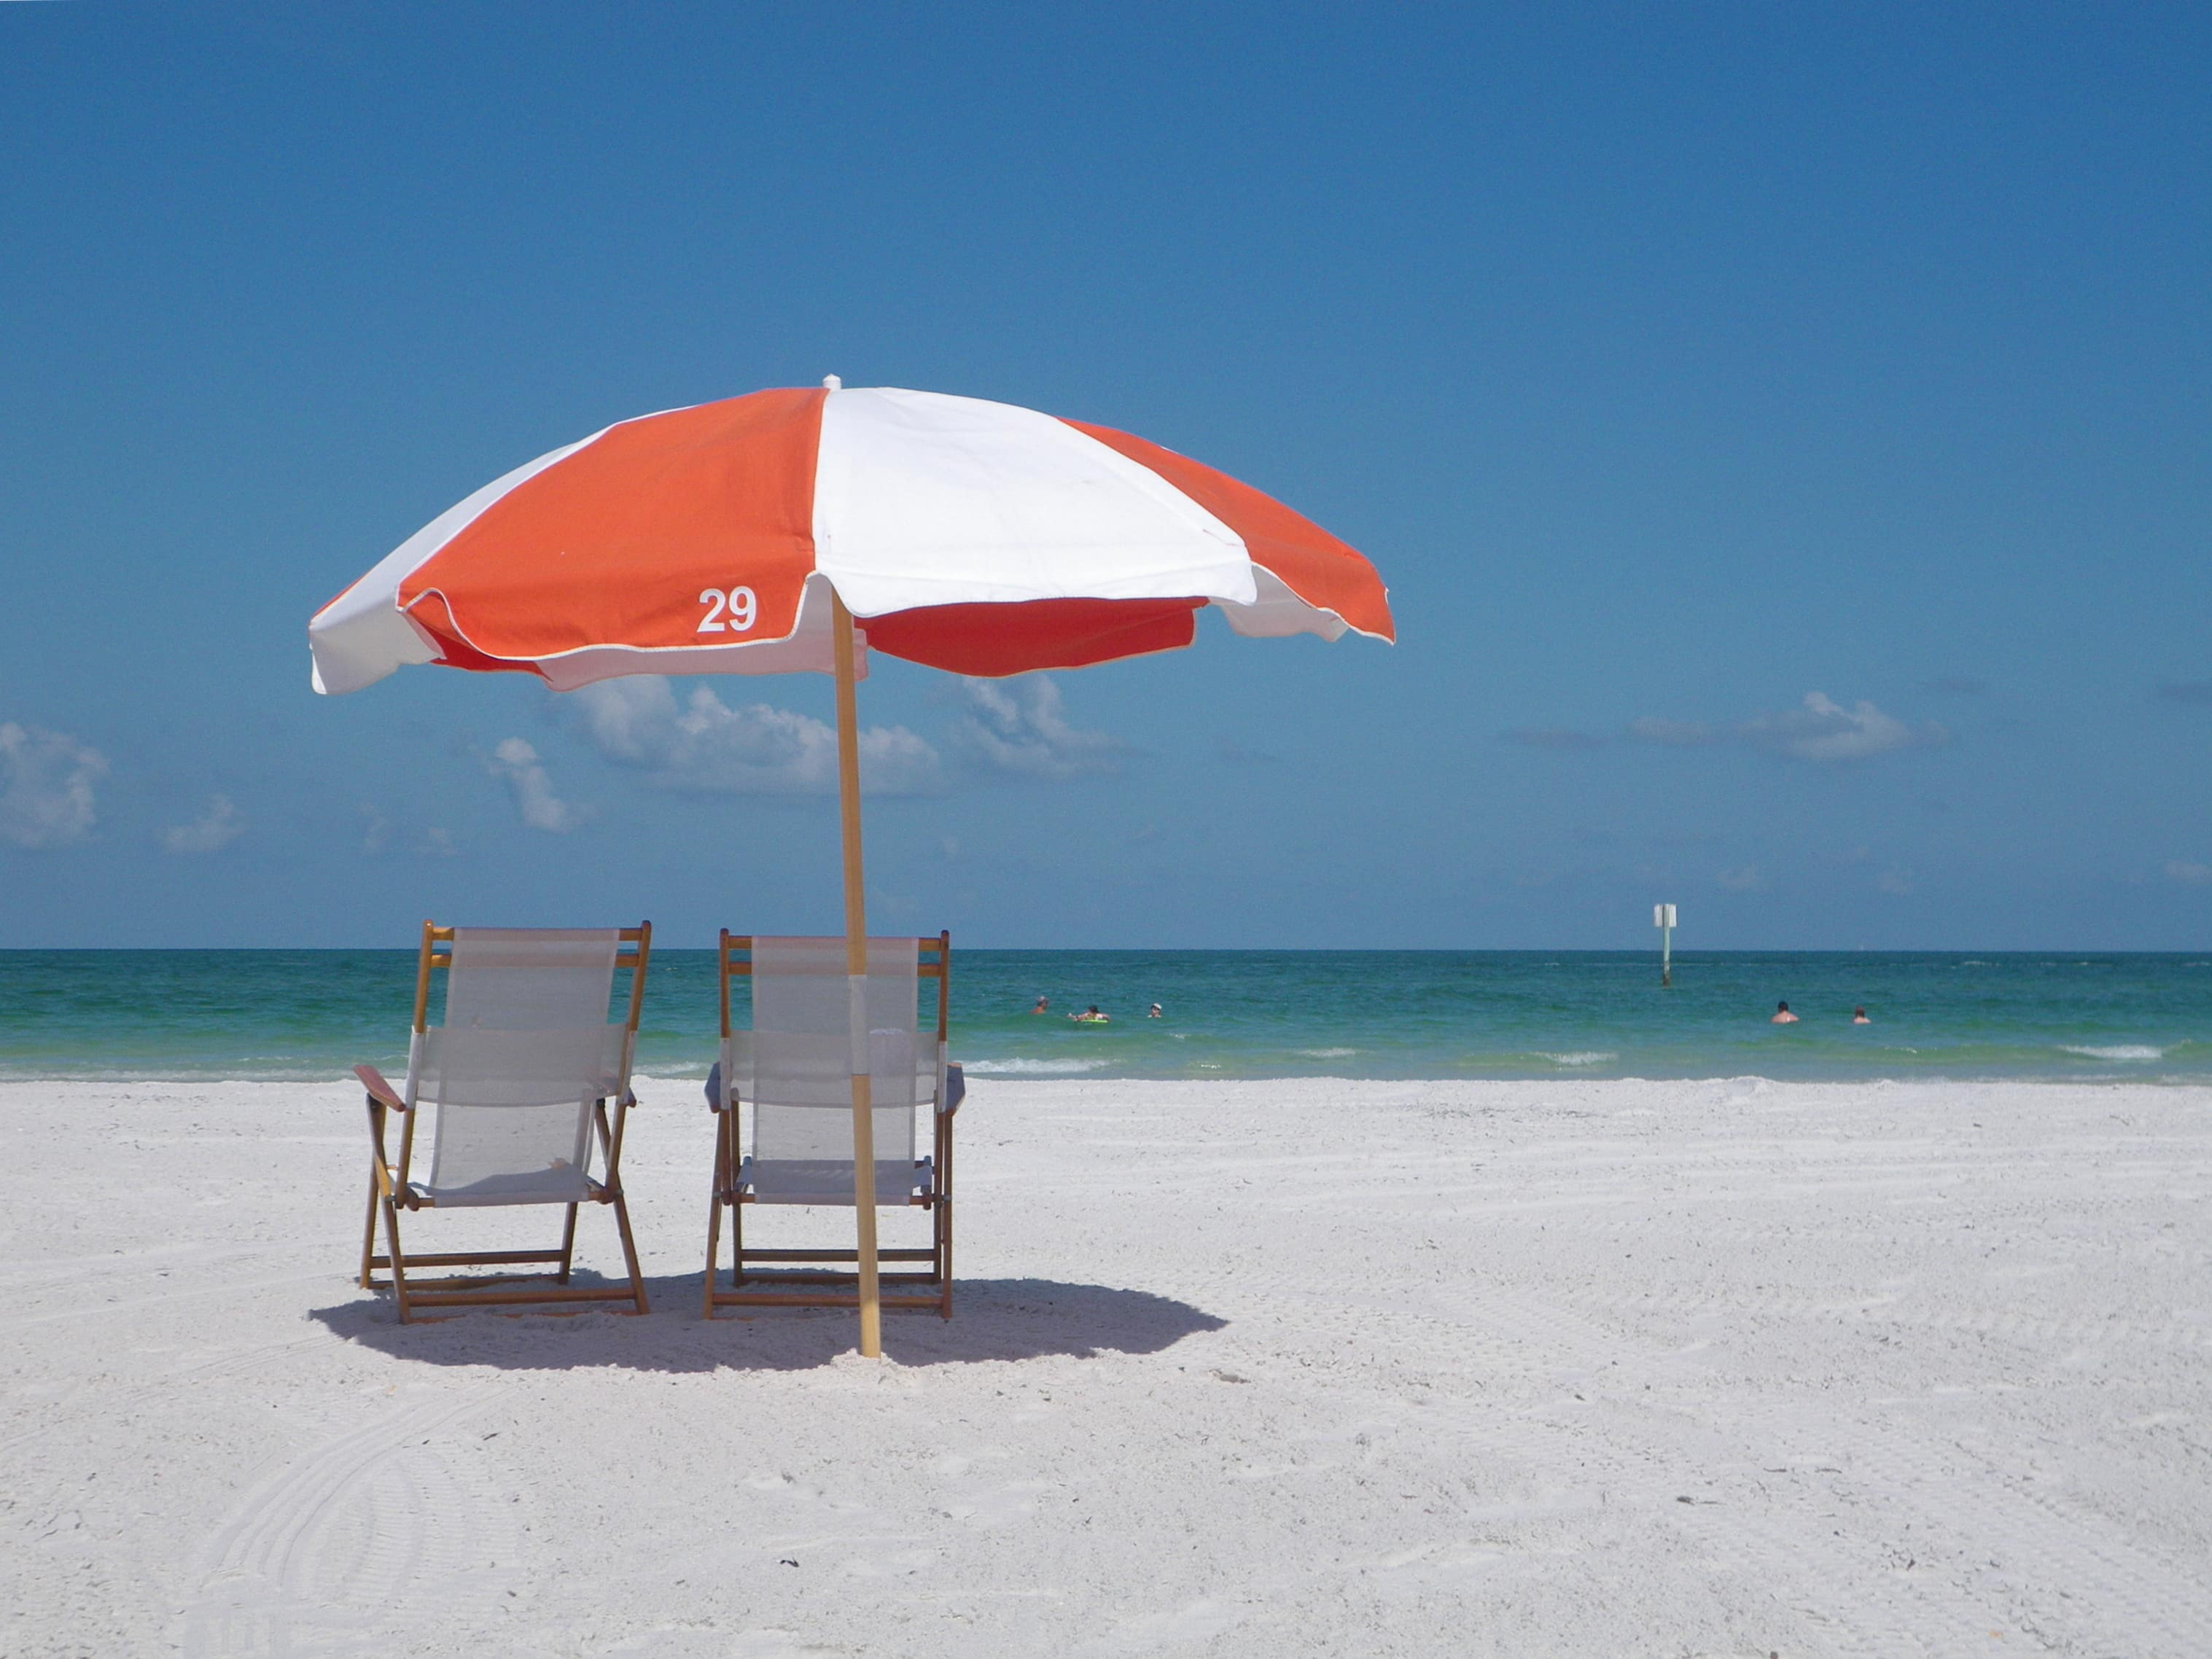 beach stuff, beach rentals, beach stuff rentals, beach stuff at siesta key, rental beach umbrellas at siesta key